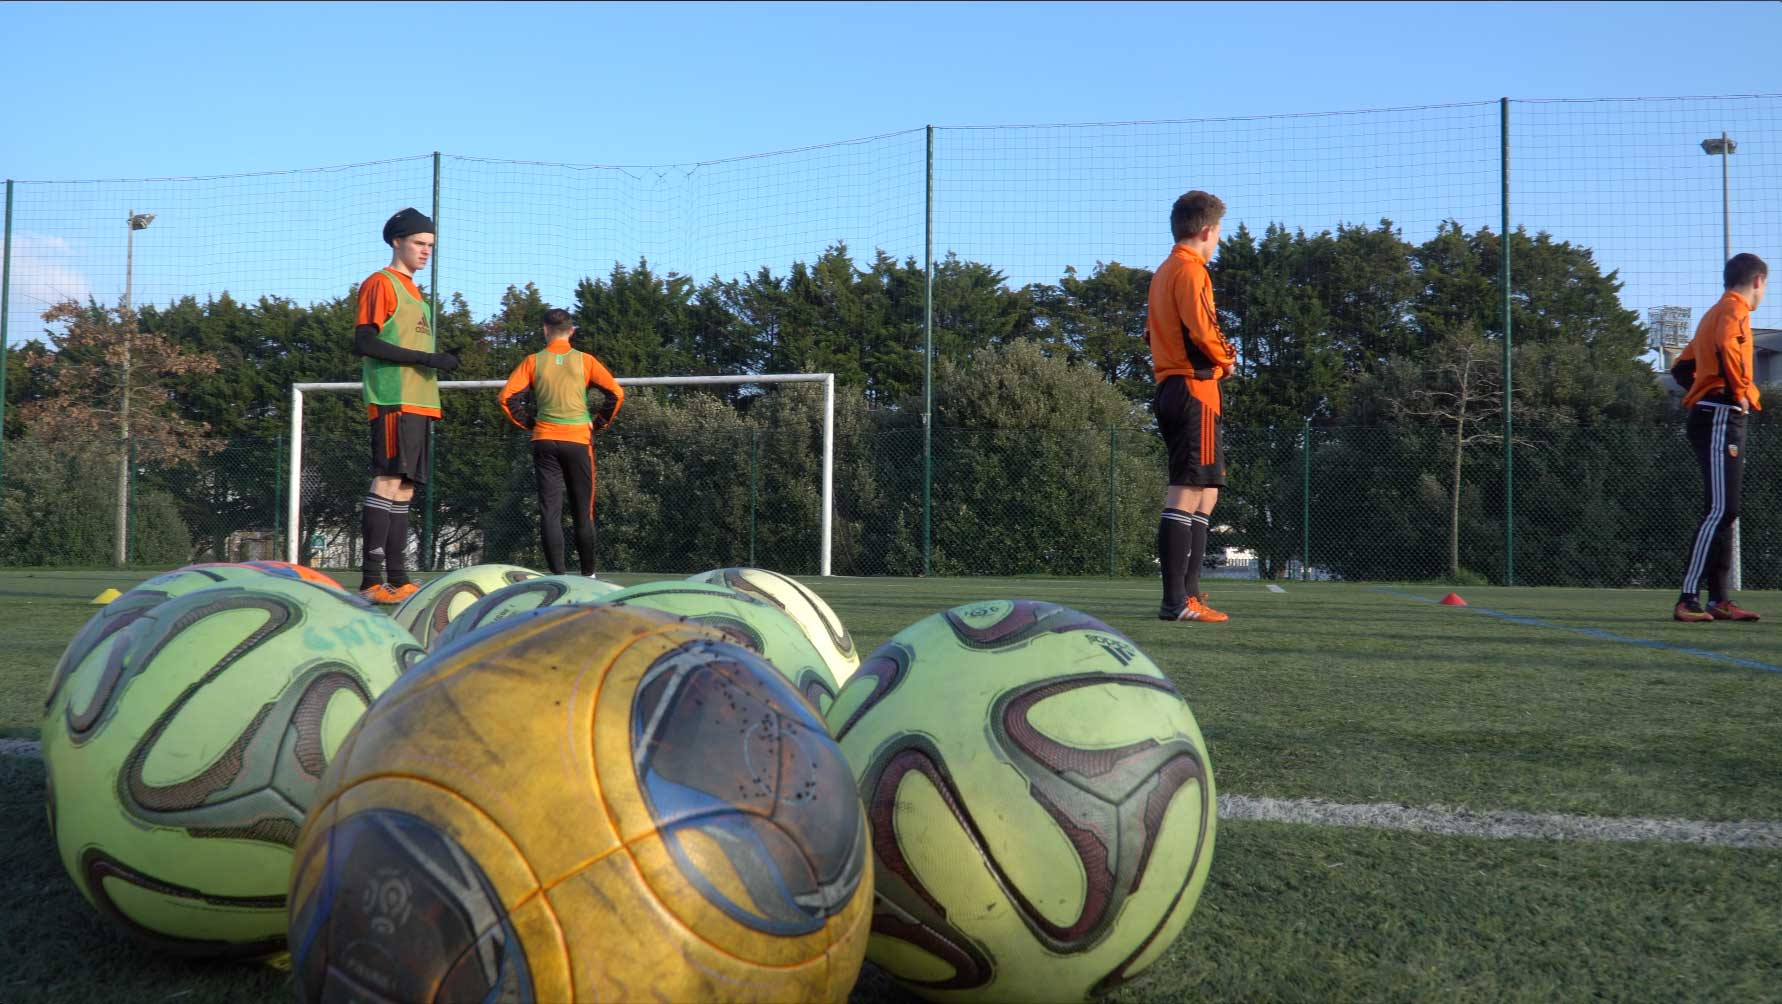 2014-2015 Lycée Dupuy de Lôme - section sportive football  partenariat avec le FCL (Football Club de Lorient).jpg